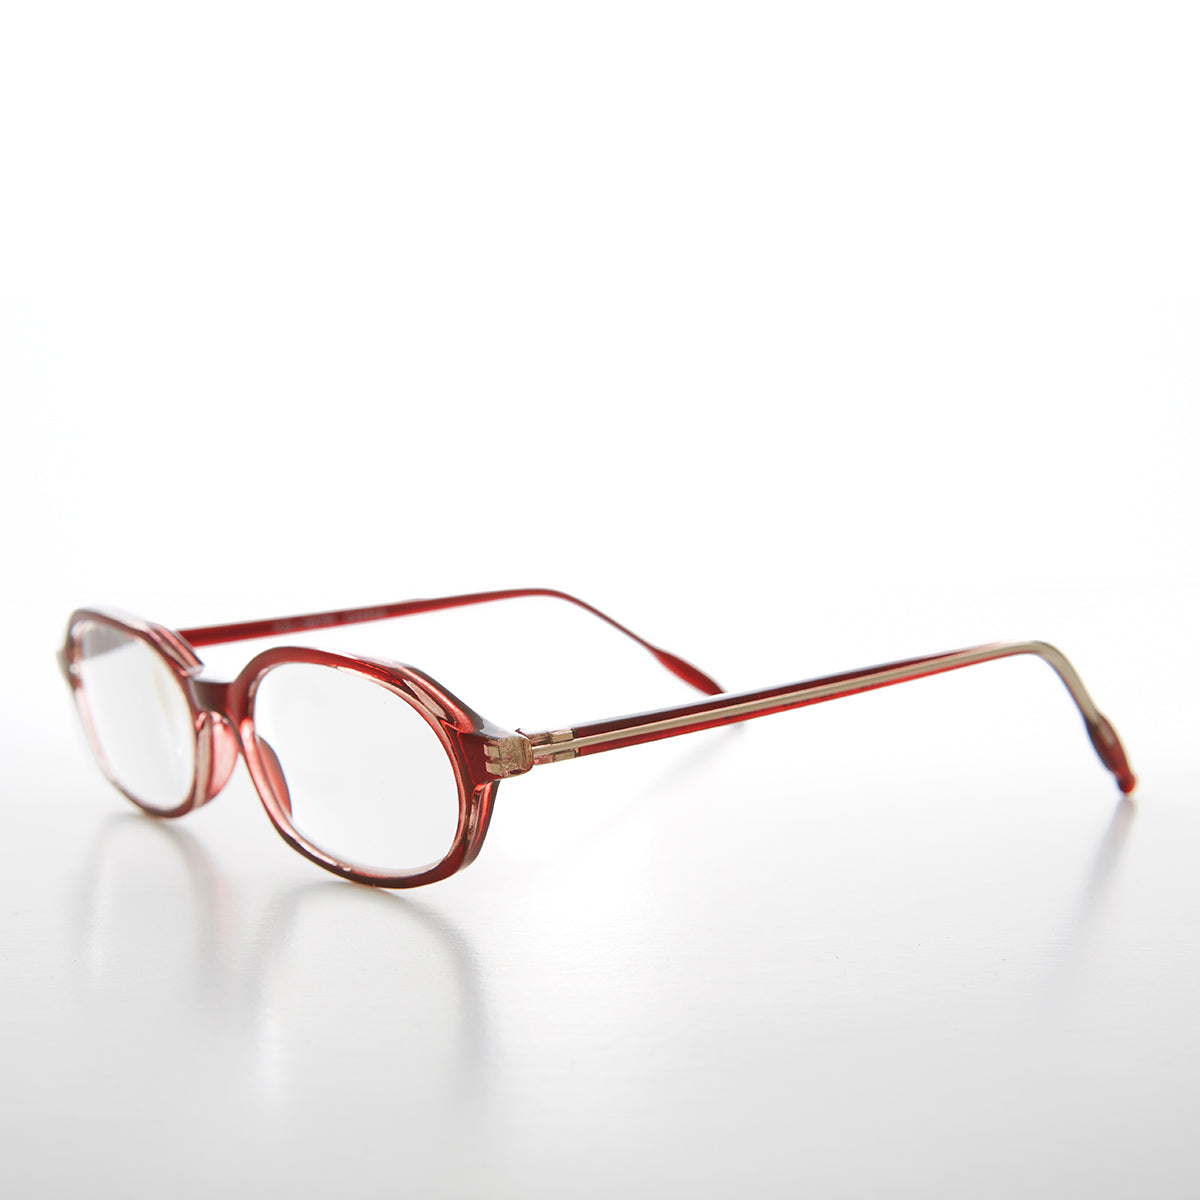 Red Rounded Rectangular Reading Glasses